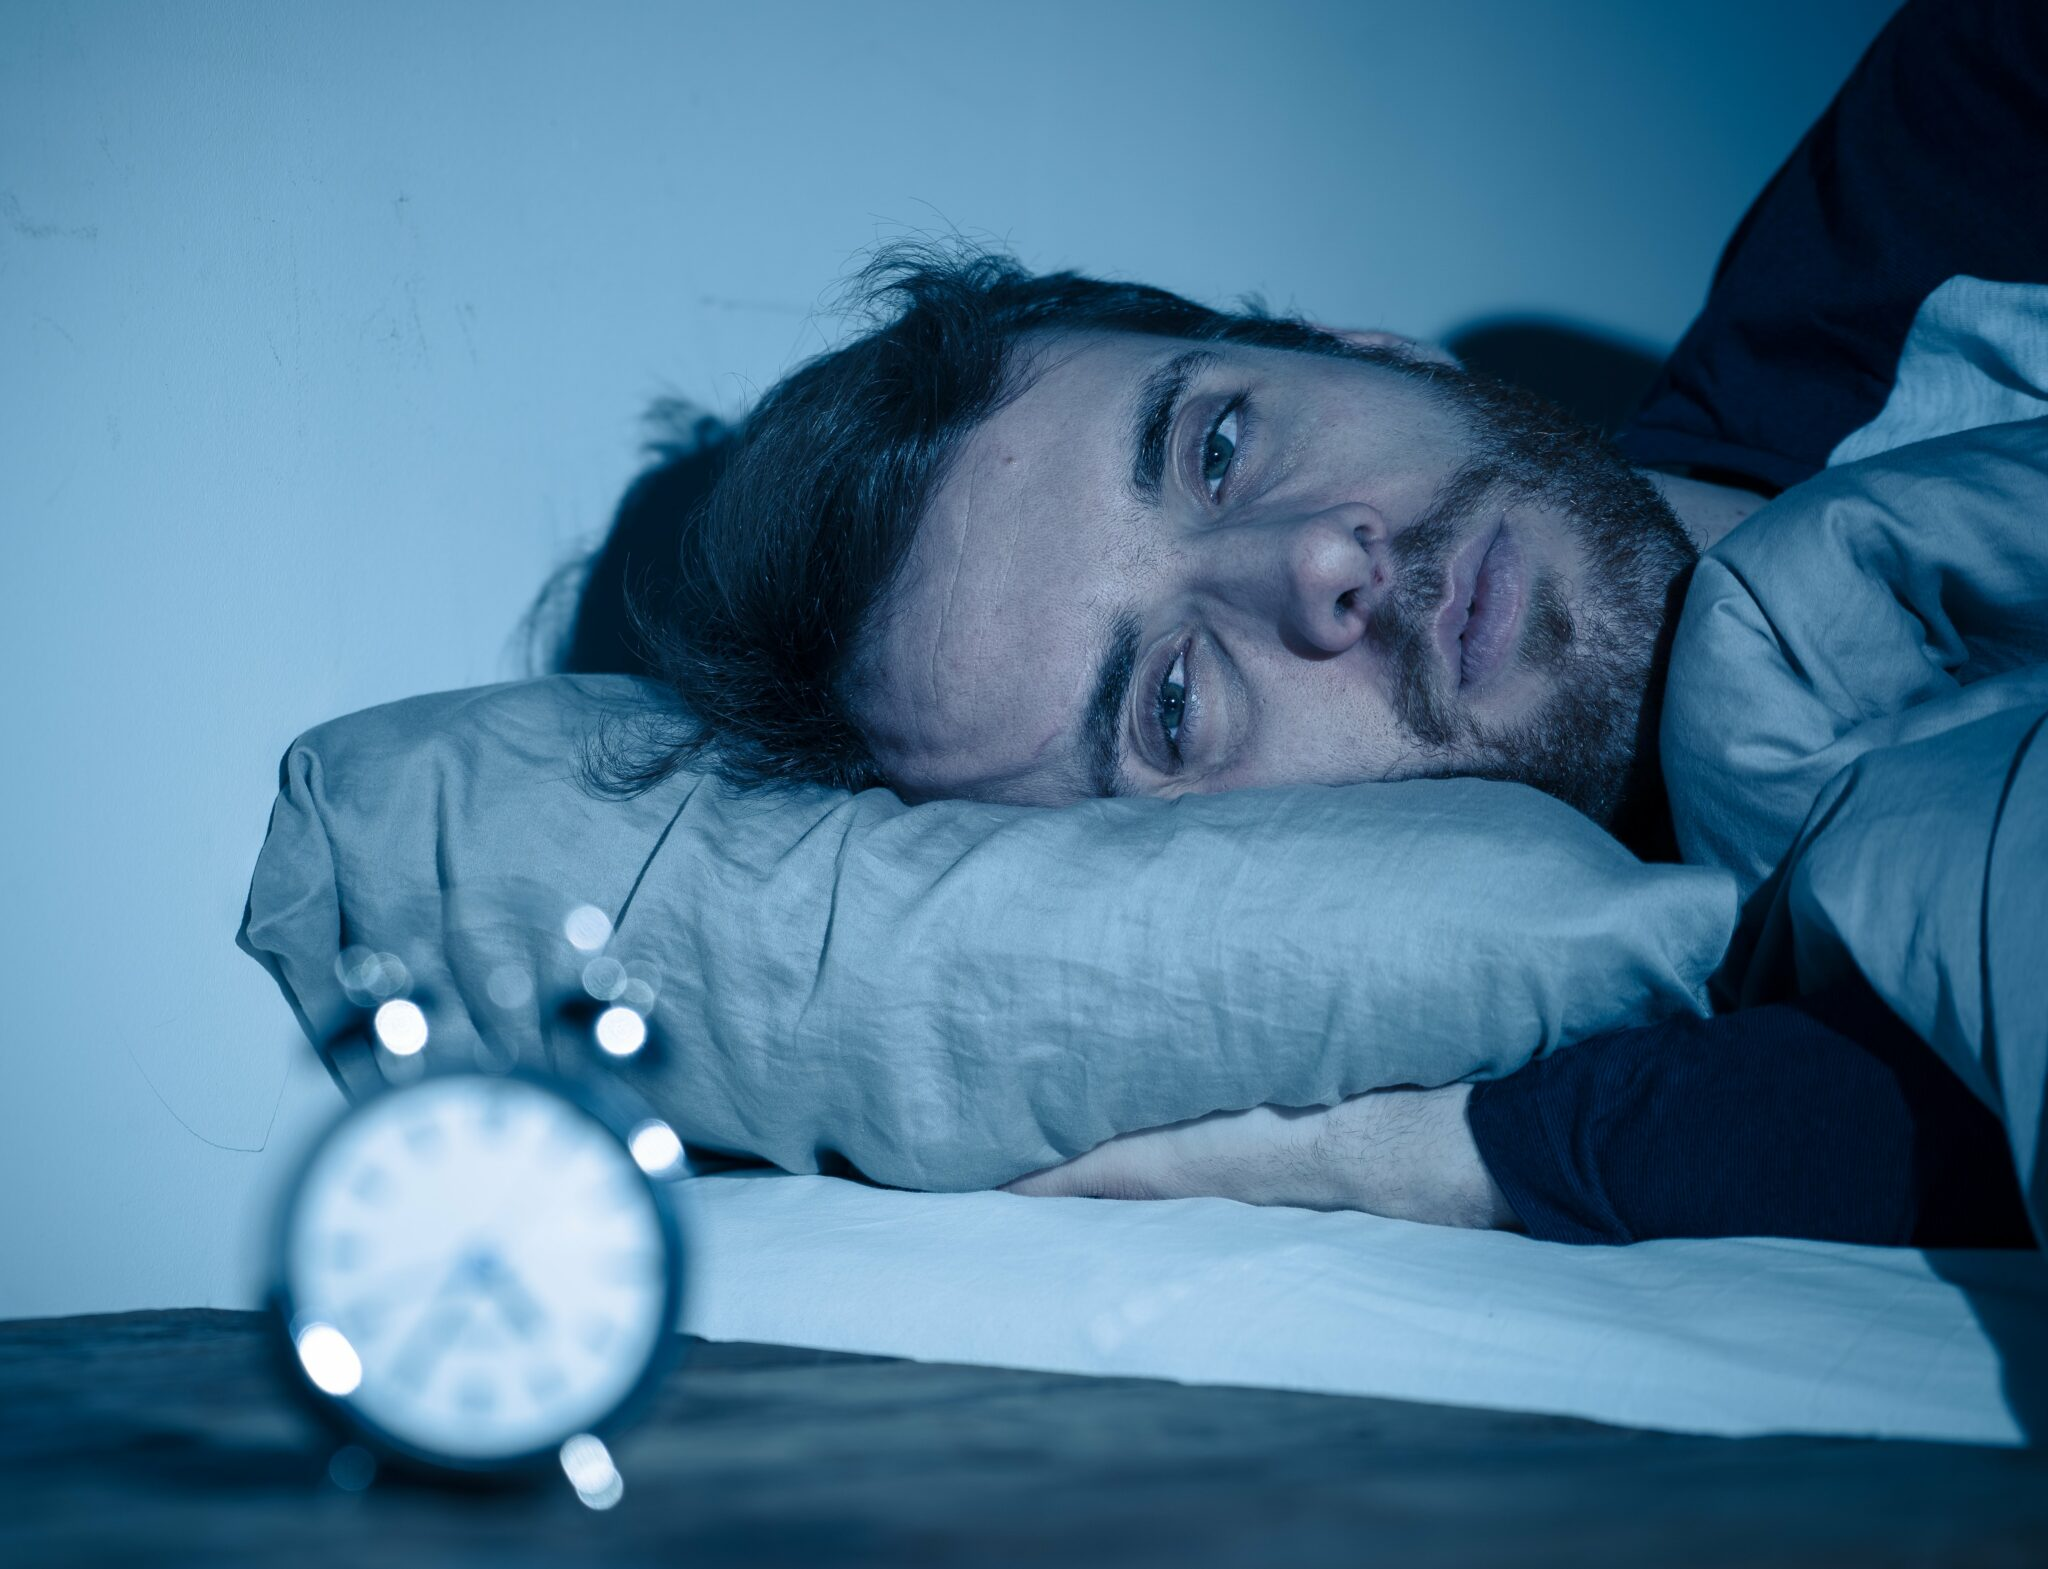 A man with a sleep disorder laying in a bed staring at an alarm clock.